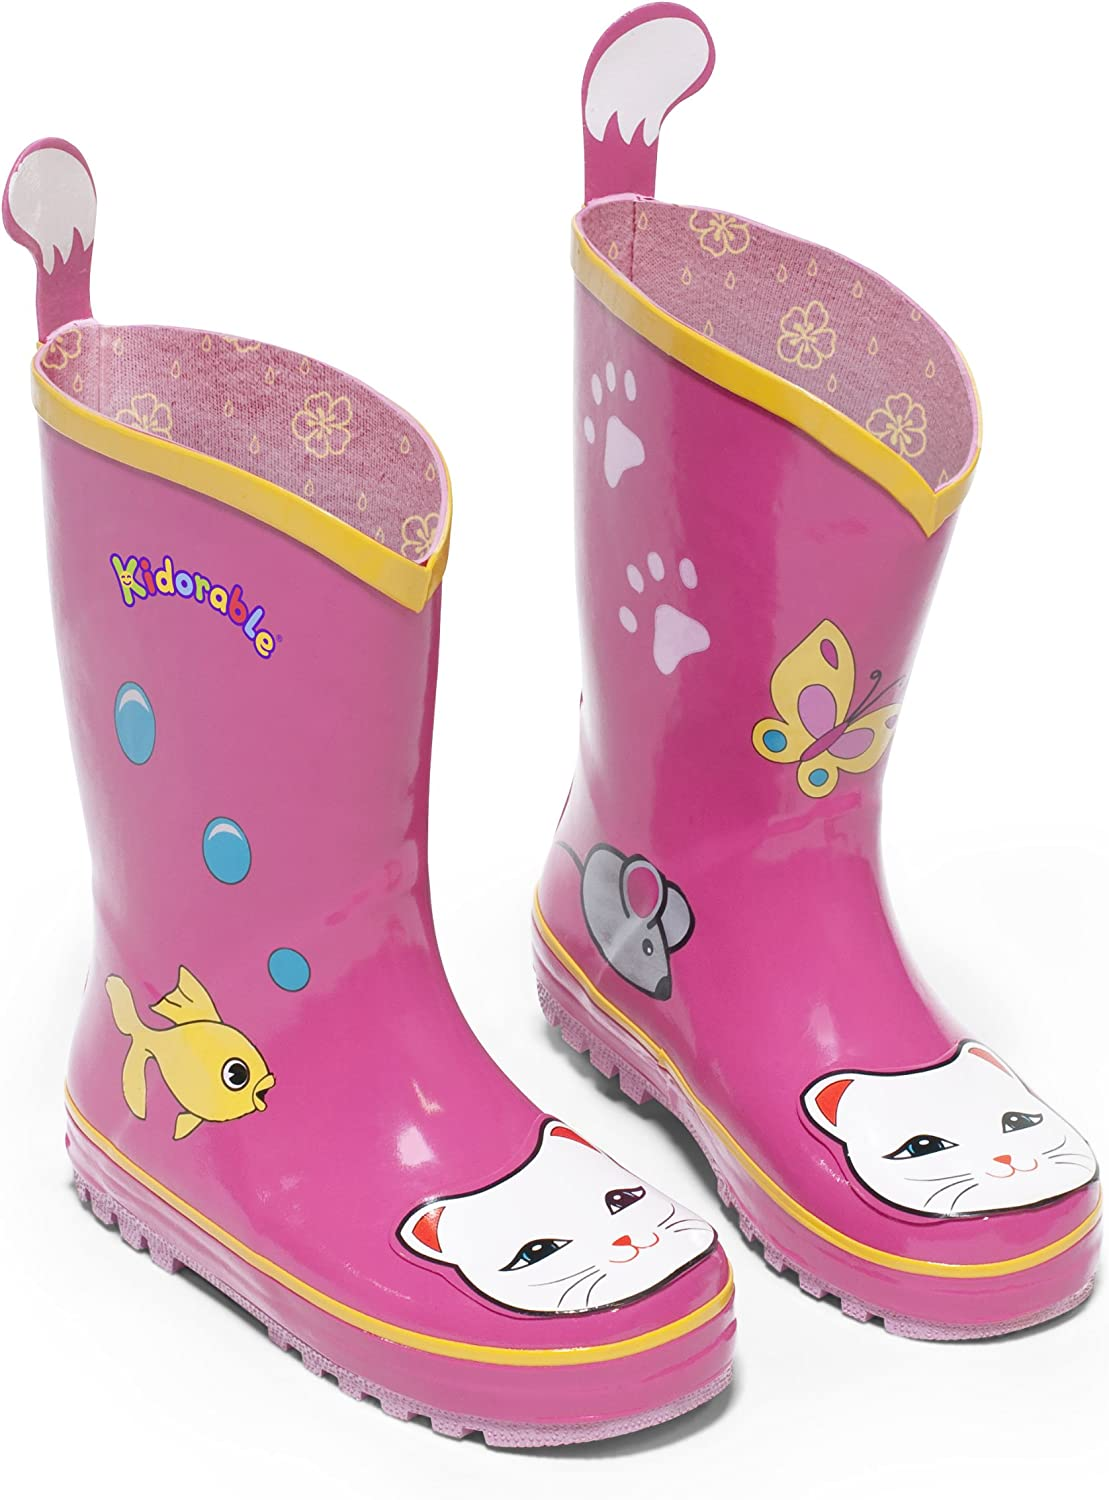 B0029K2E6M Kidorable Lucky Cat Rainboots, Pink, Kids Sizes, Natural Rubber Boots with Cotton Lining, Pull On Heel Tab & Non-Slip Sole 81fG1ckhVGL